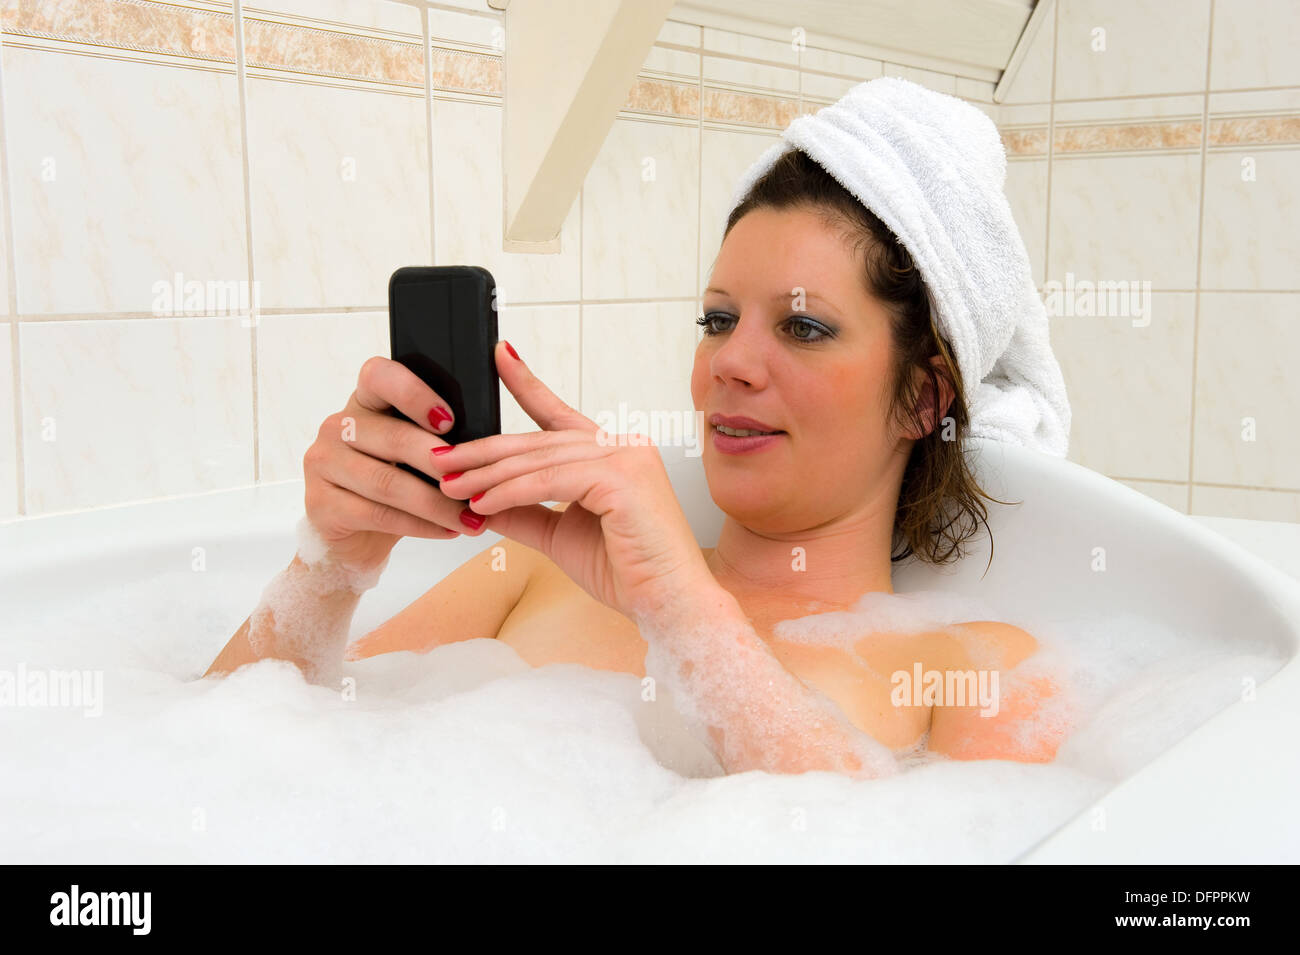 A woman is playing with her smartphone while she is enjoying a hot bath - Stock Image